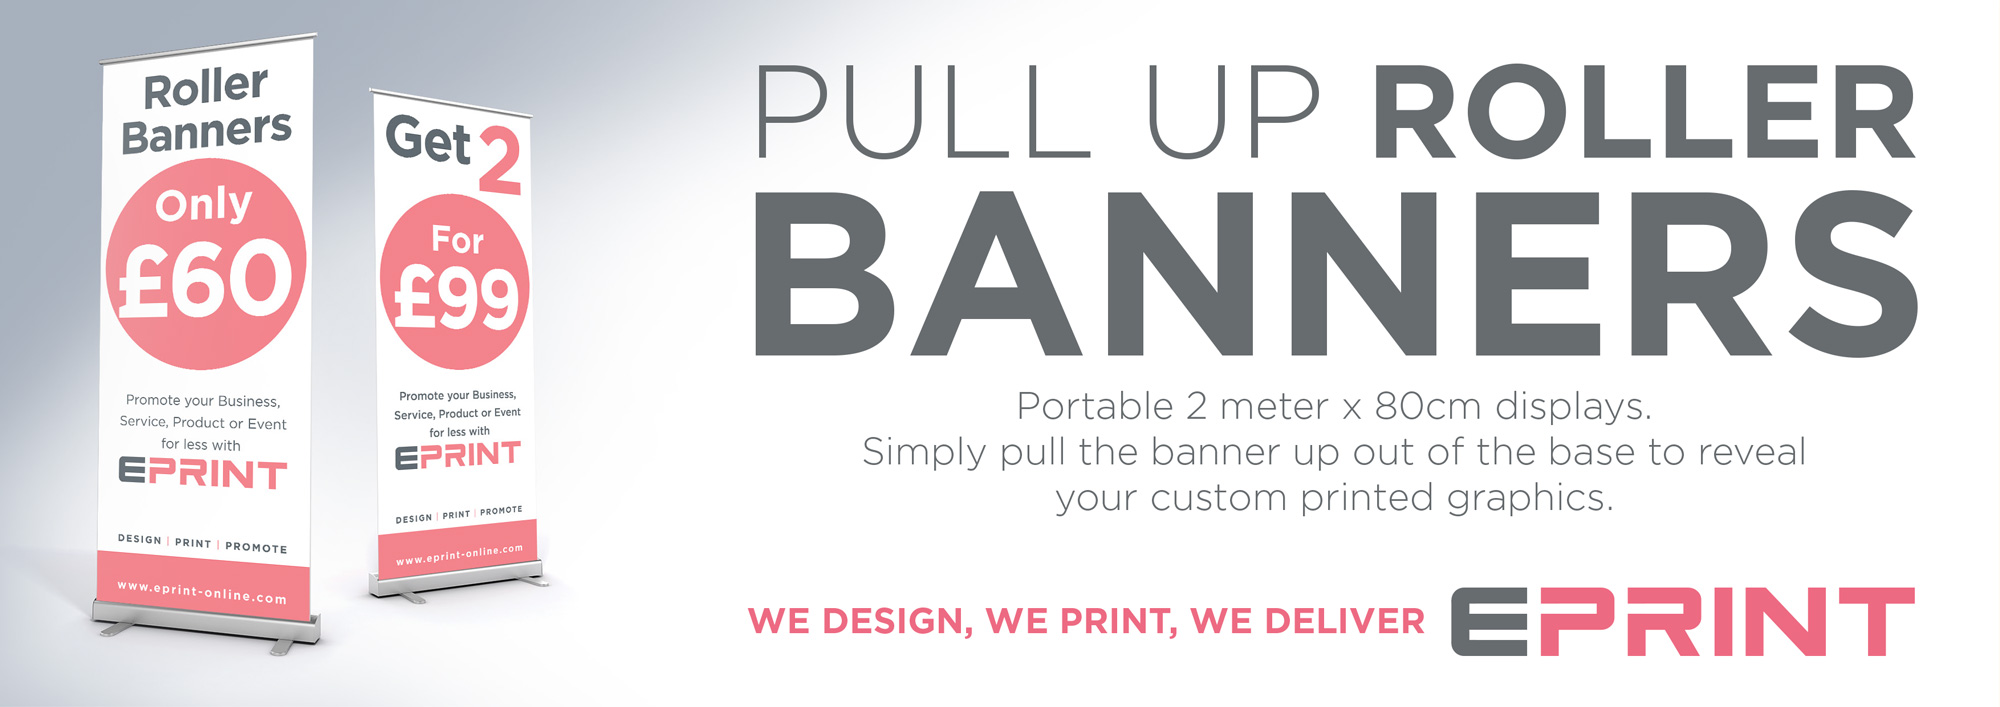 Eprint Roller Banners ull Up Banners